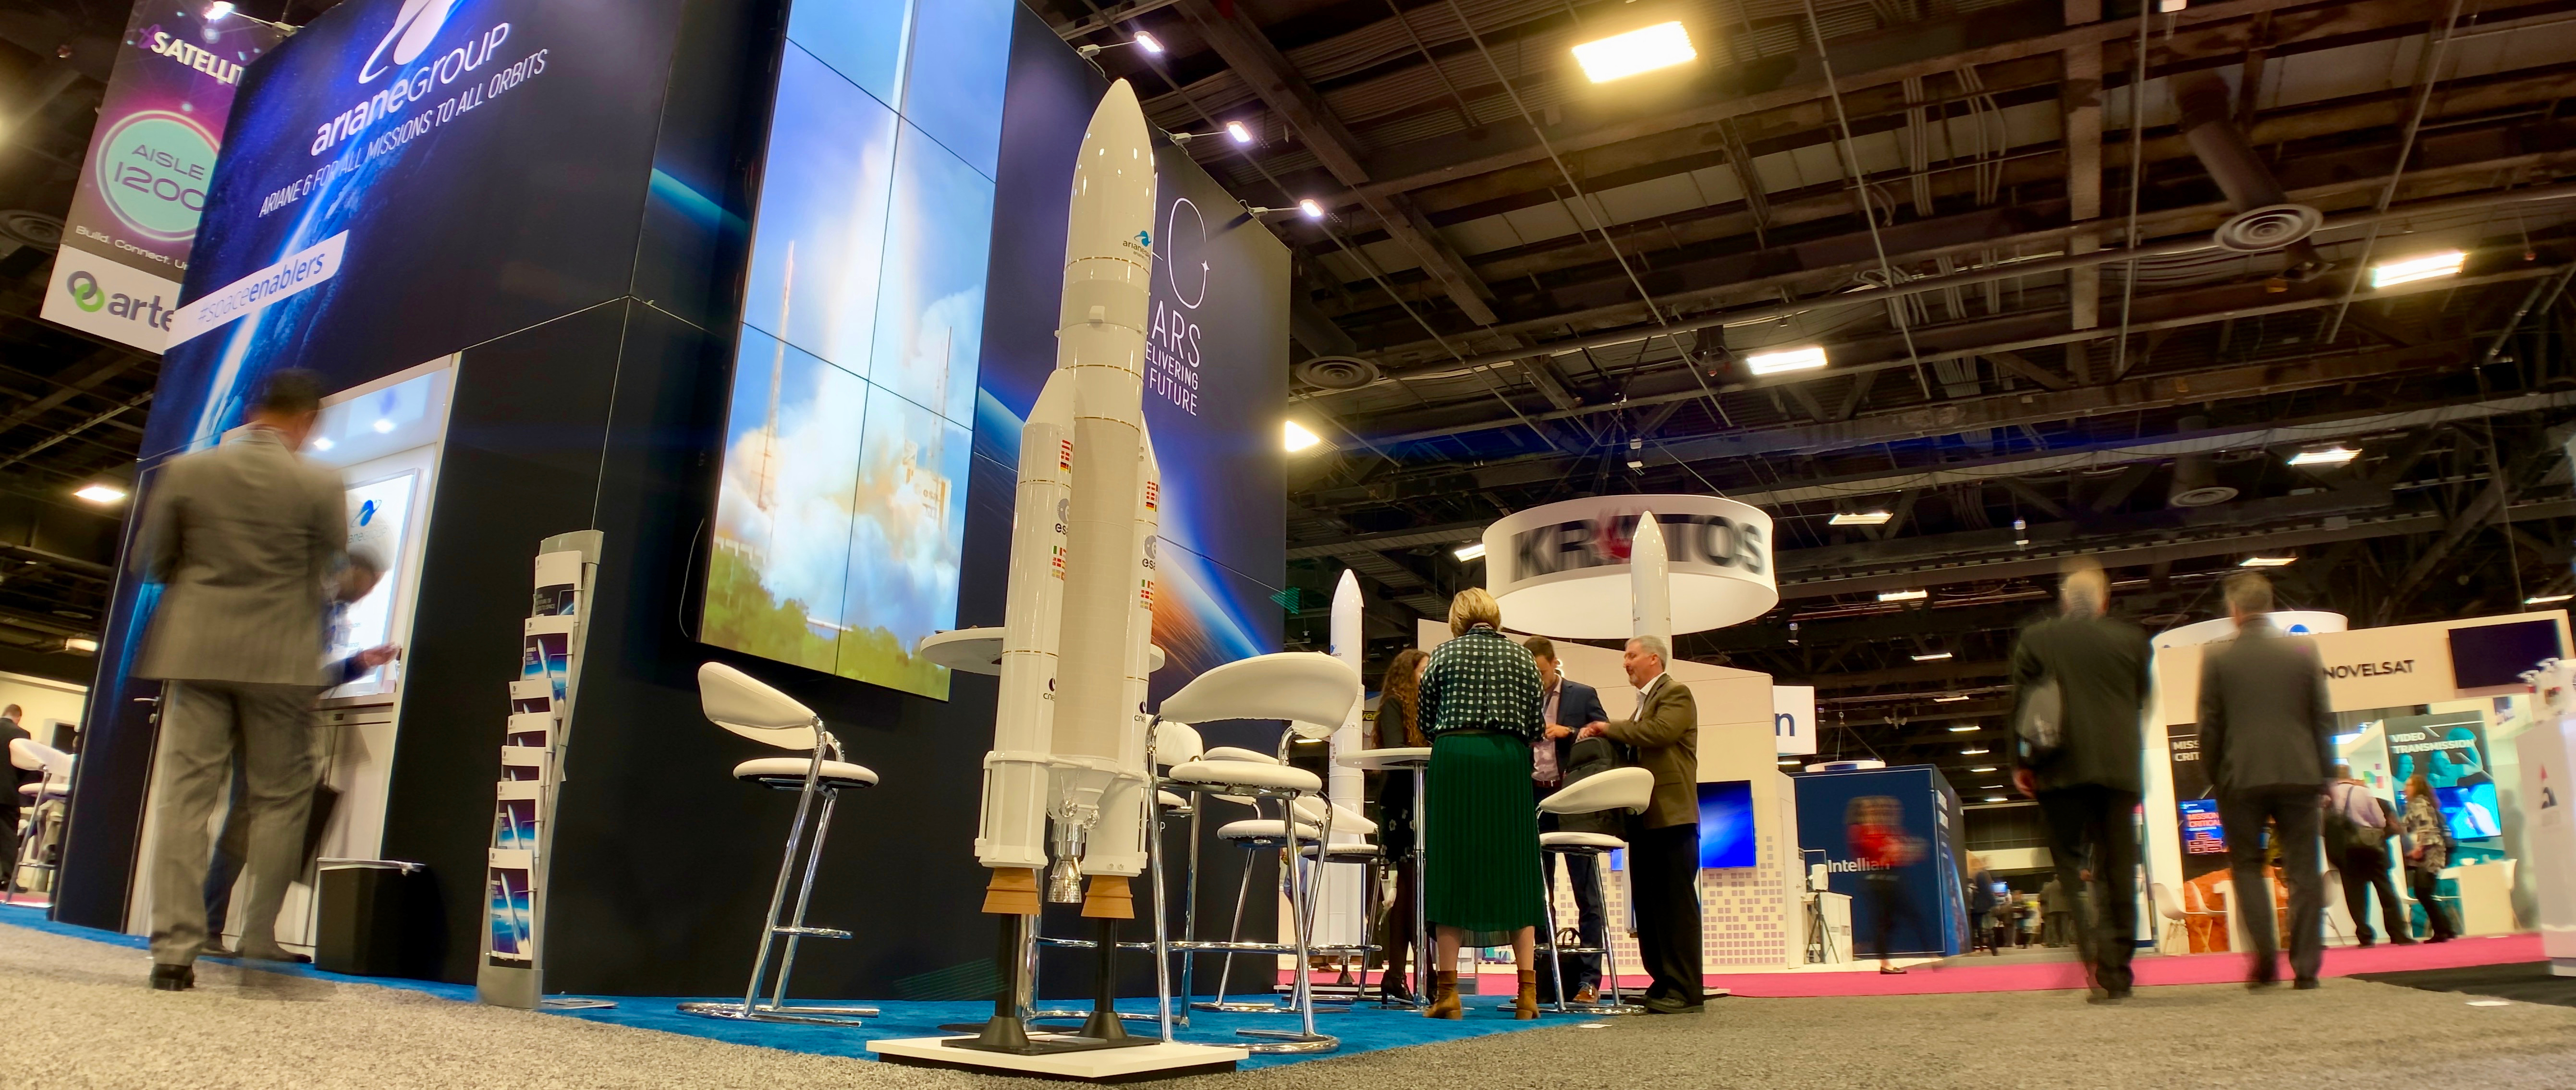 The ArianeGroup's stand was decorated with rockets that did not dispense coffee and did not heat cinnamon rolls. And you should have seen the puzzlement on their faces as I made those two very specific inquires.